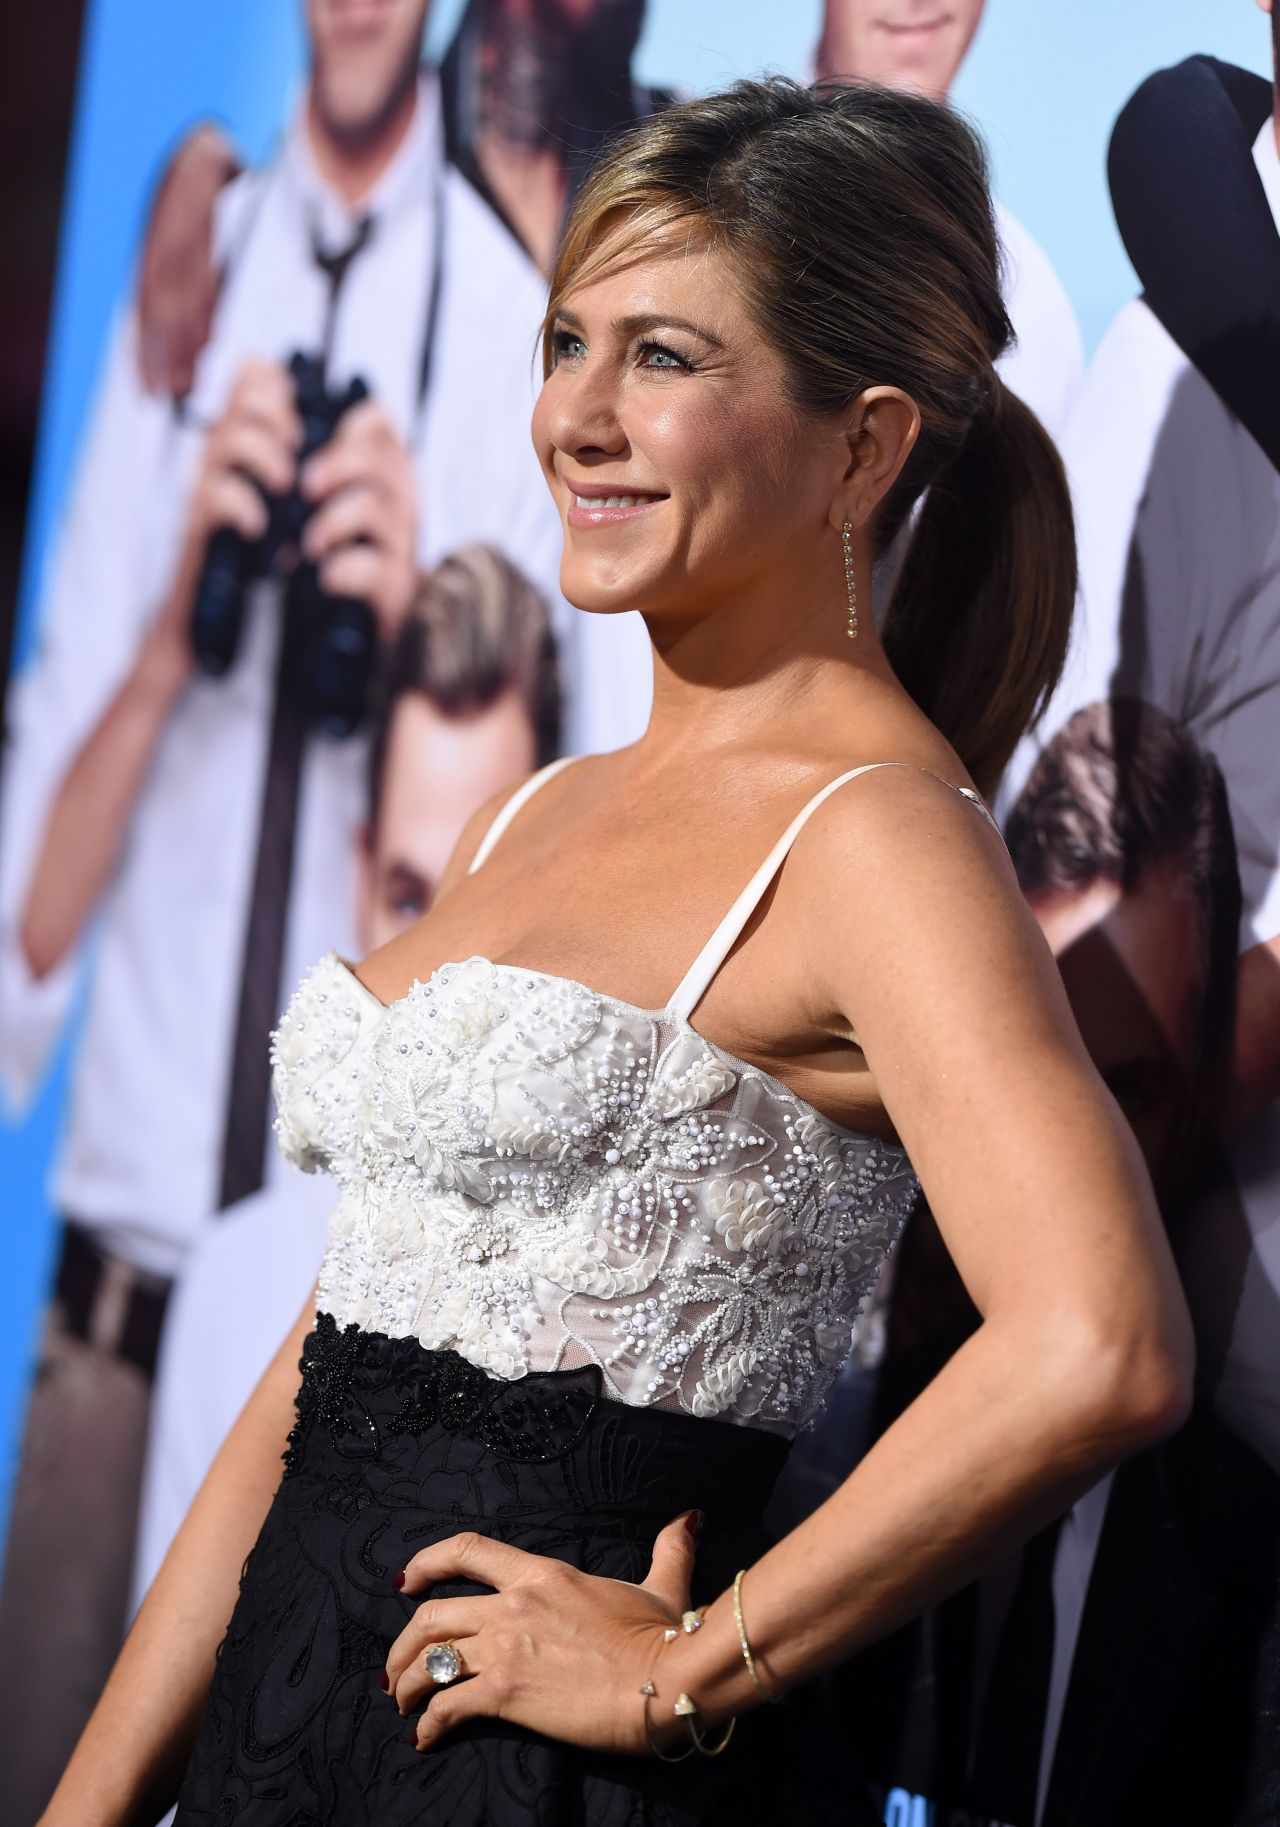 Jennifer Aniston Horrible Bosses 2 Premiere At Tcl